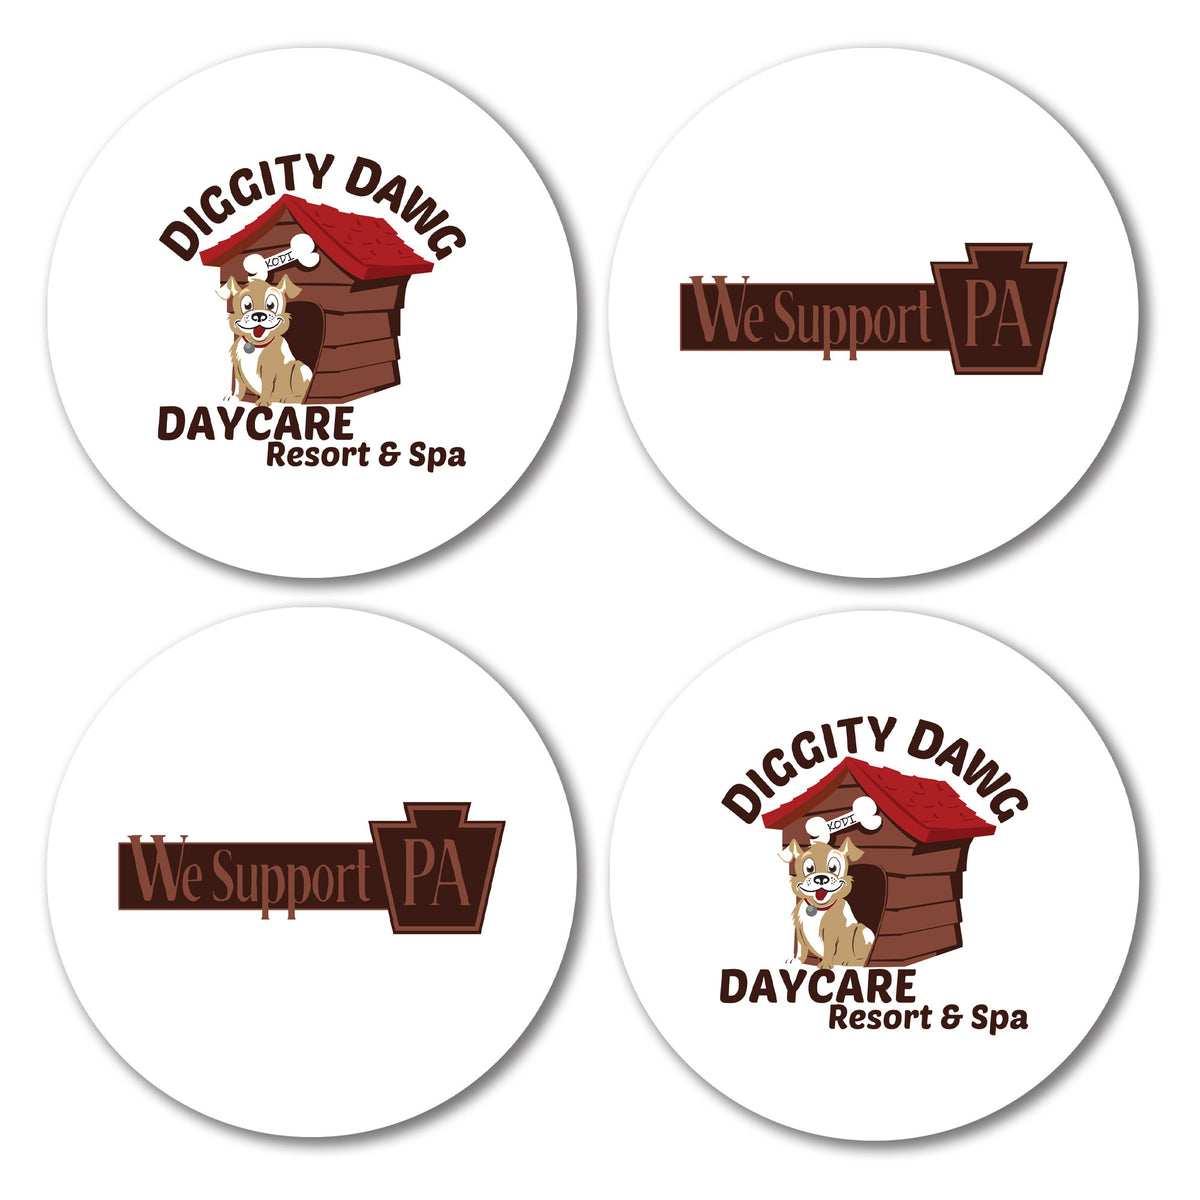 Diggity Dawg Daycare We Support PA Coasters